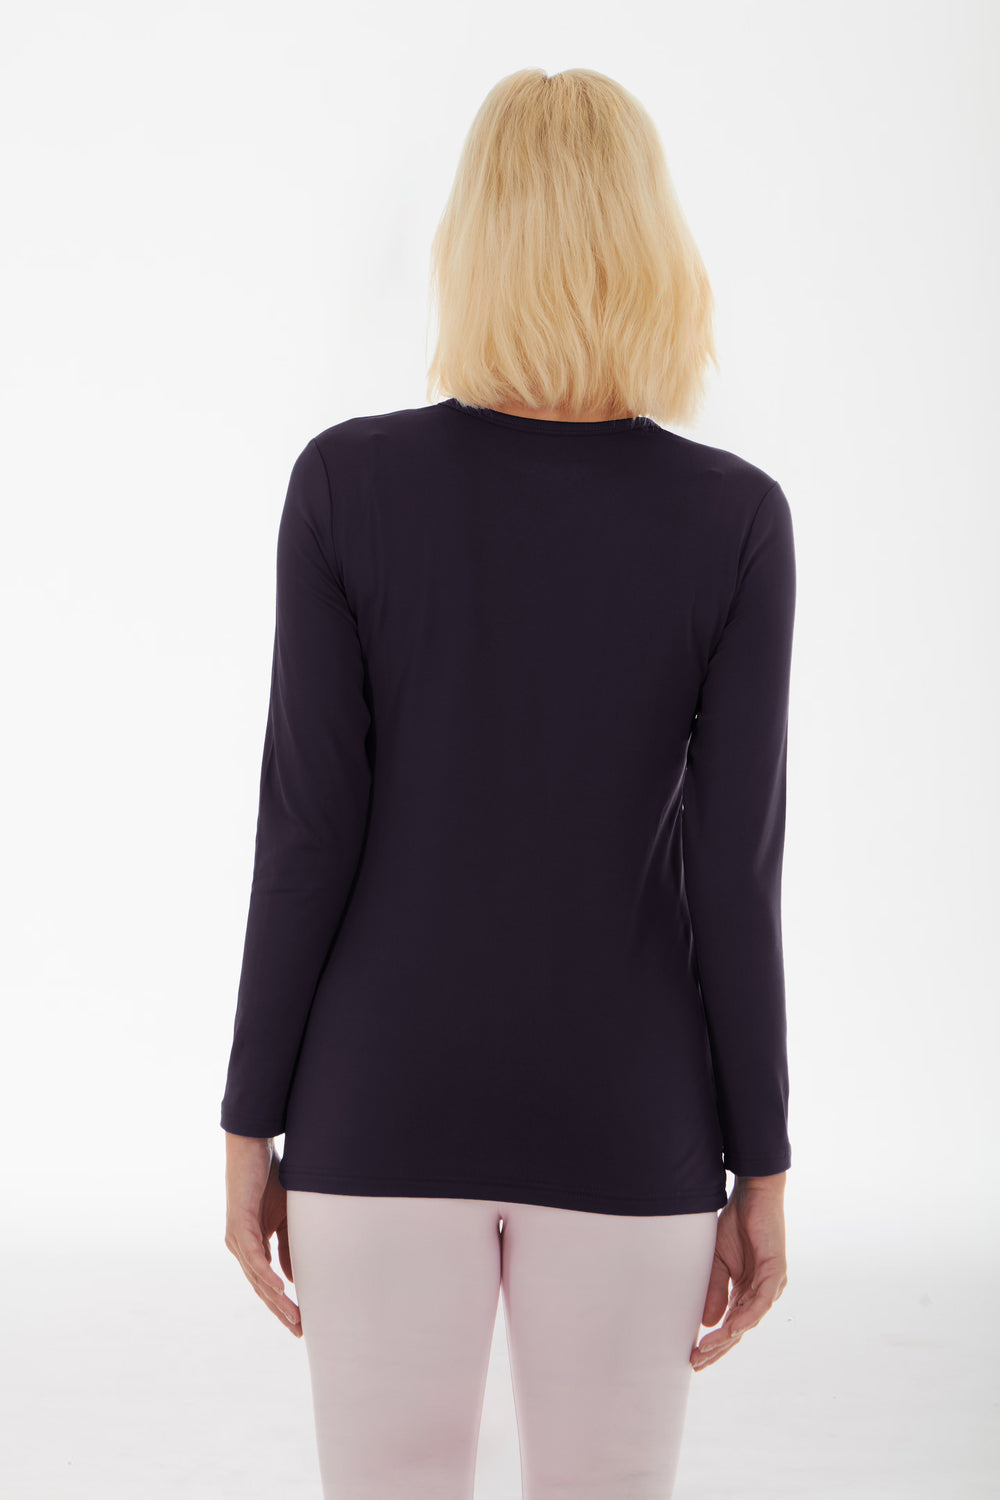 Women's Crew Neck Thermal Shirt